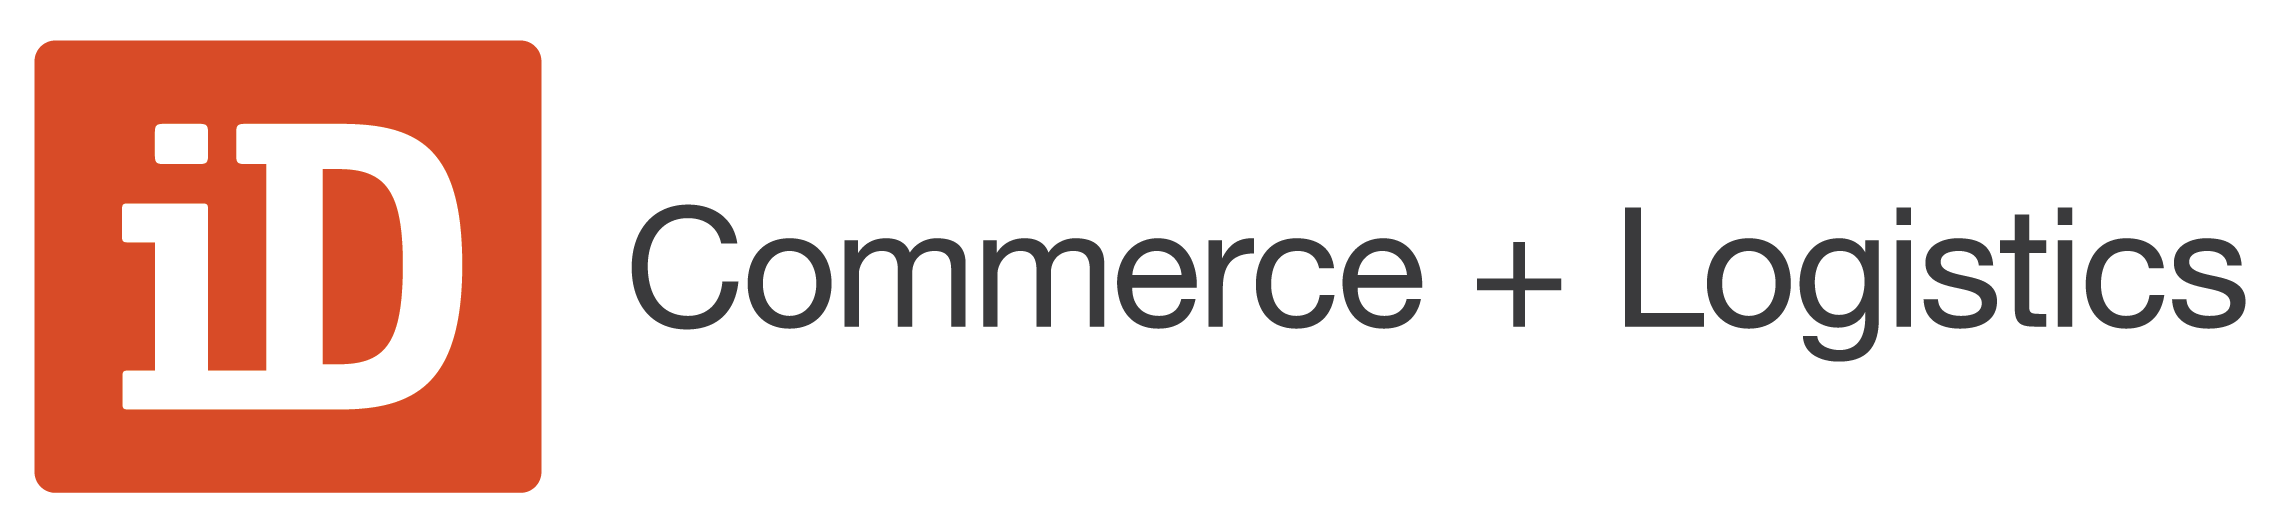 iD Commerce + Logistics Logo